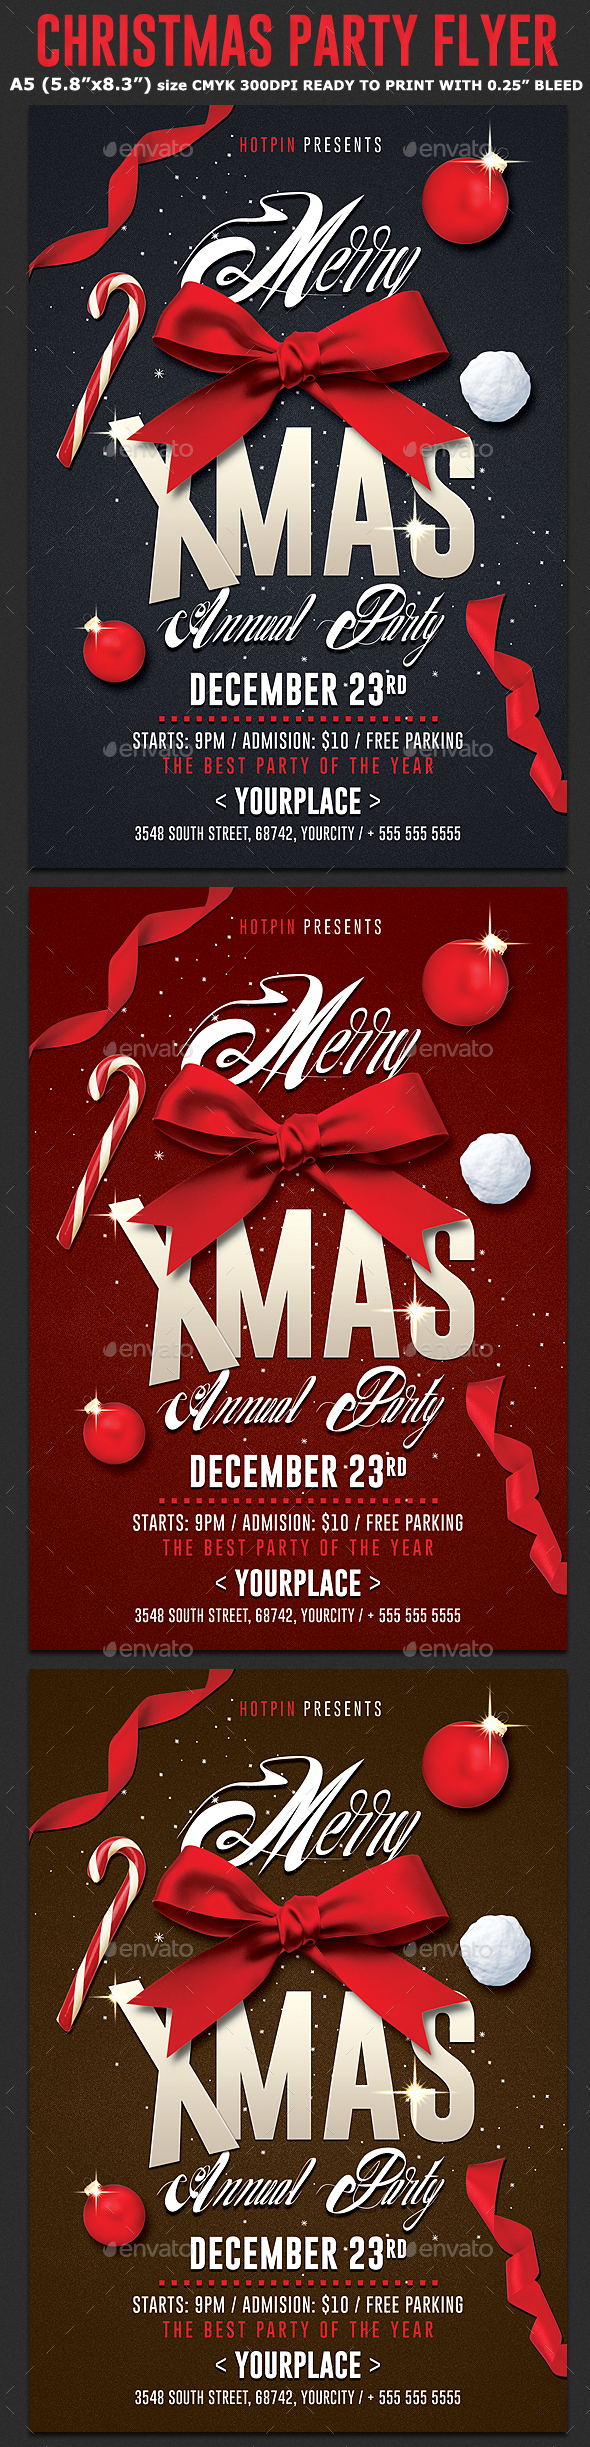 Christmas Party Flyer Psd Template By Hotpin Graphicriver